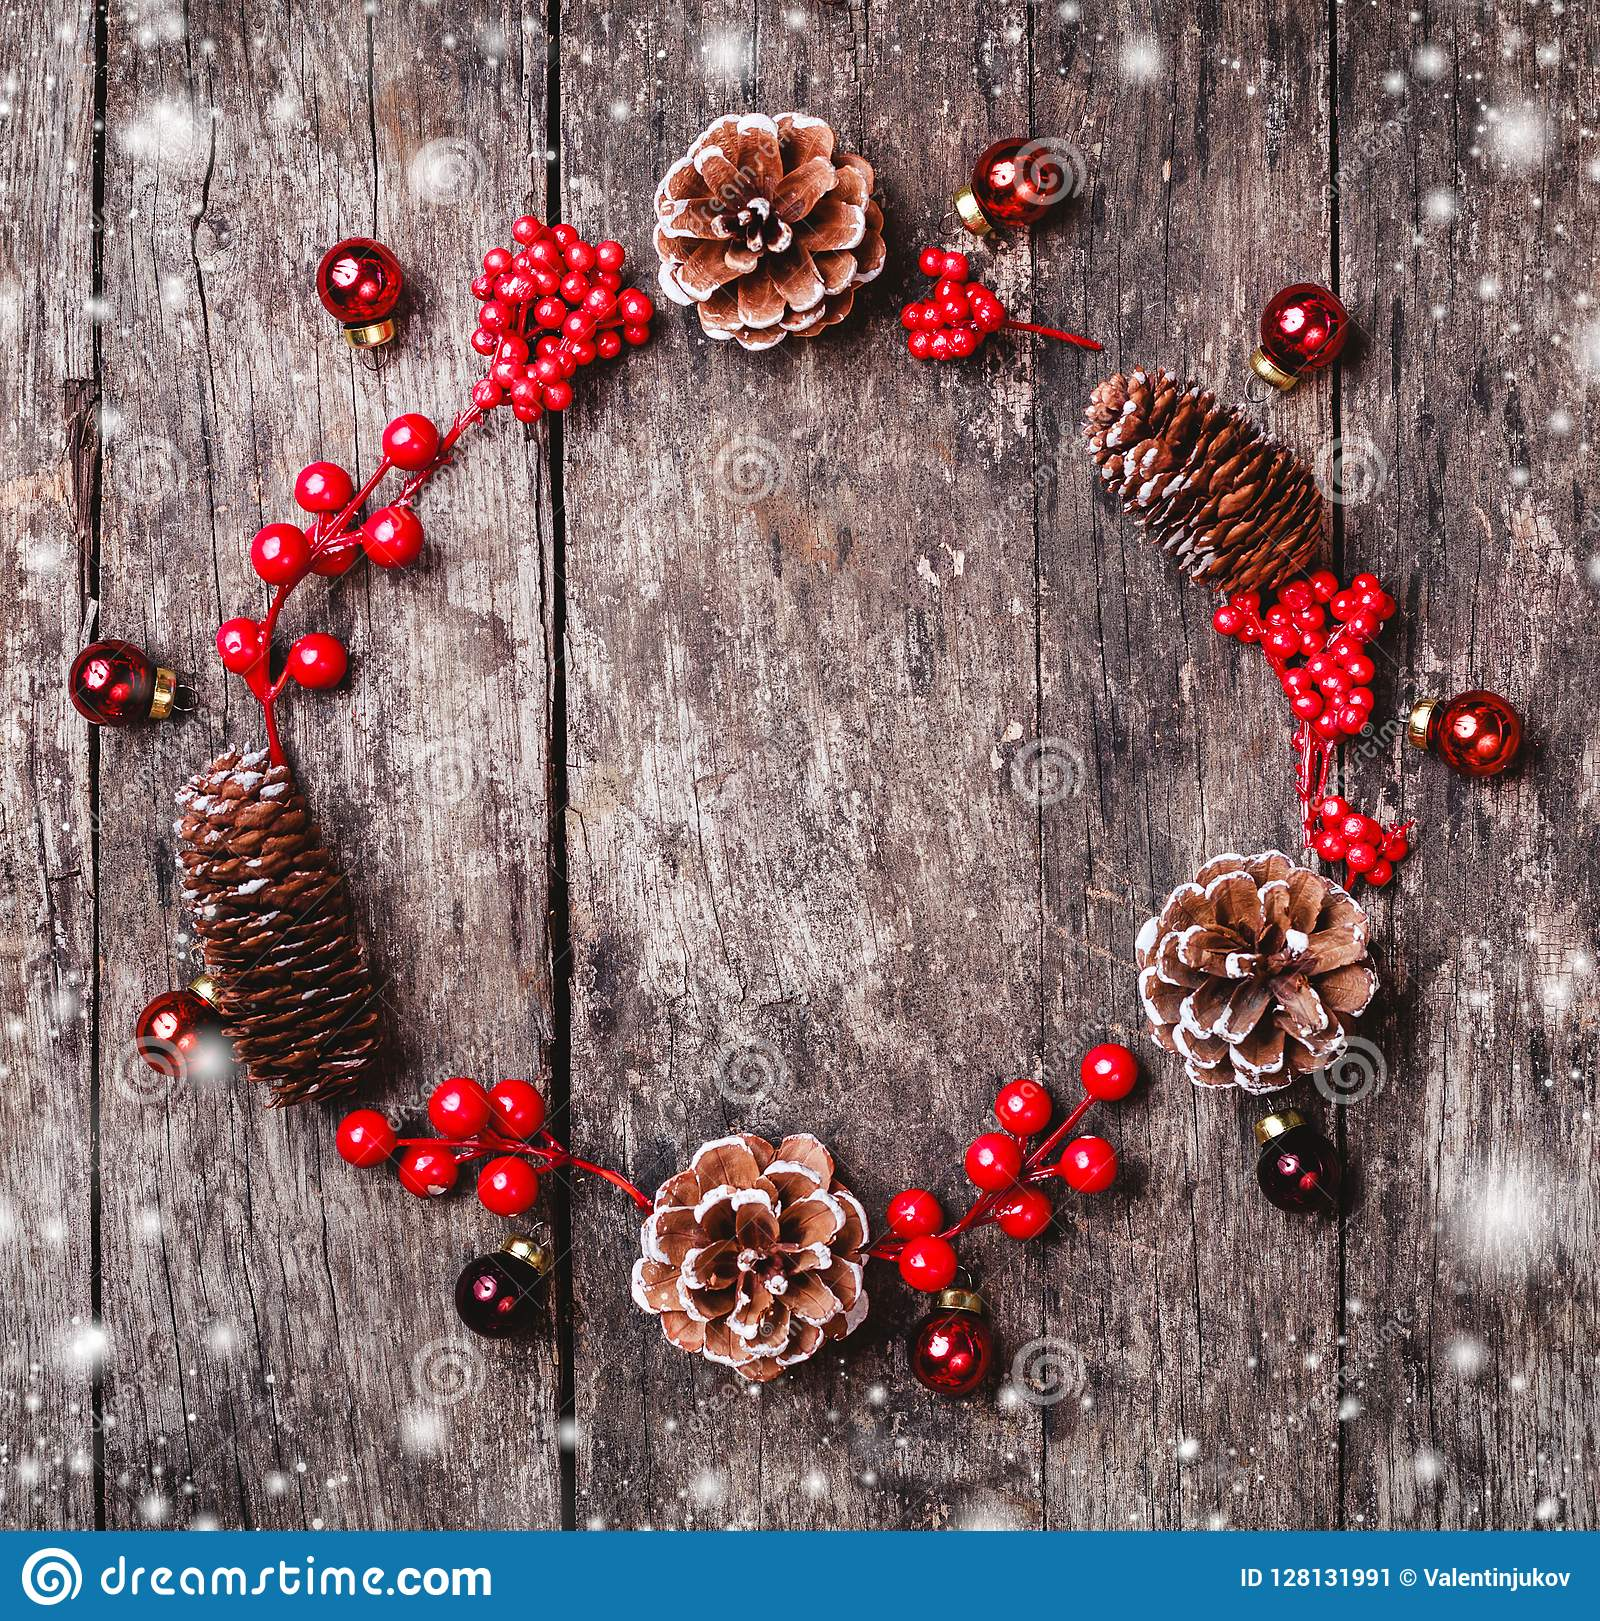 Christmas wreath of Fir branches, cones, red decorations on dark wooden background.